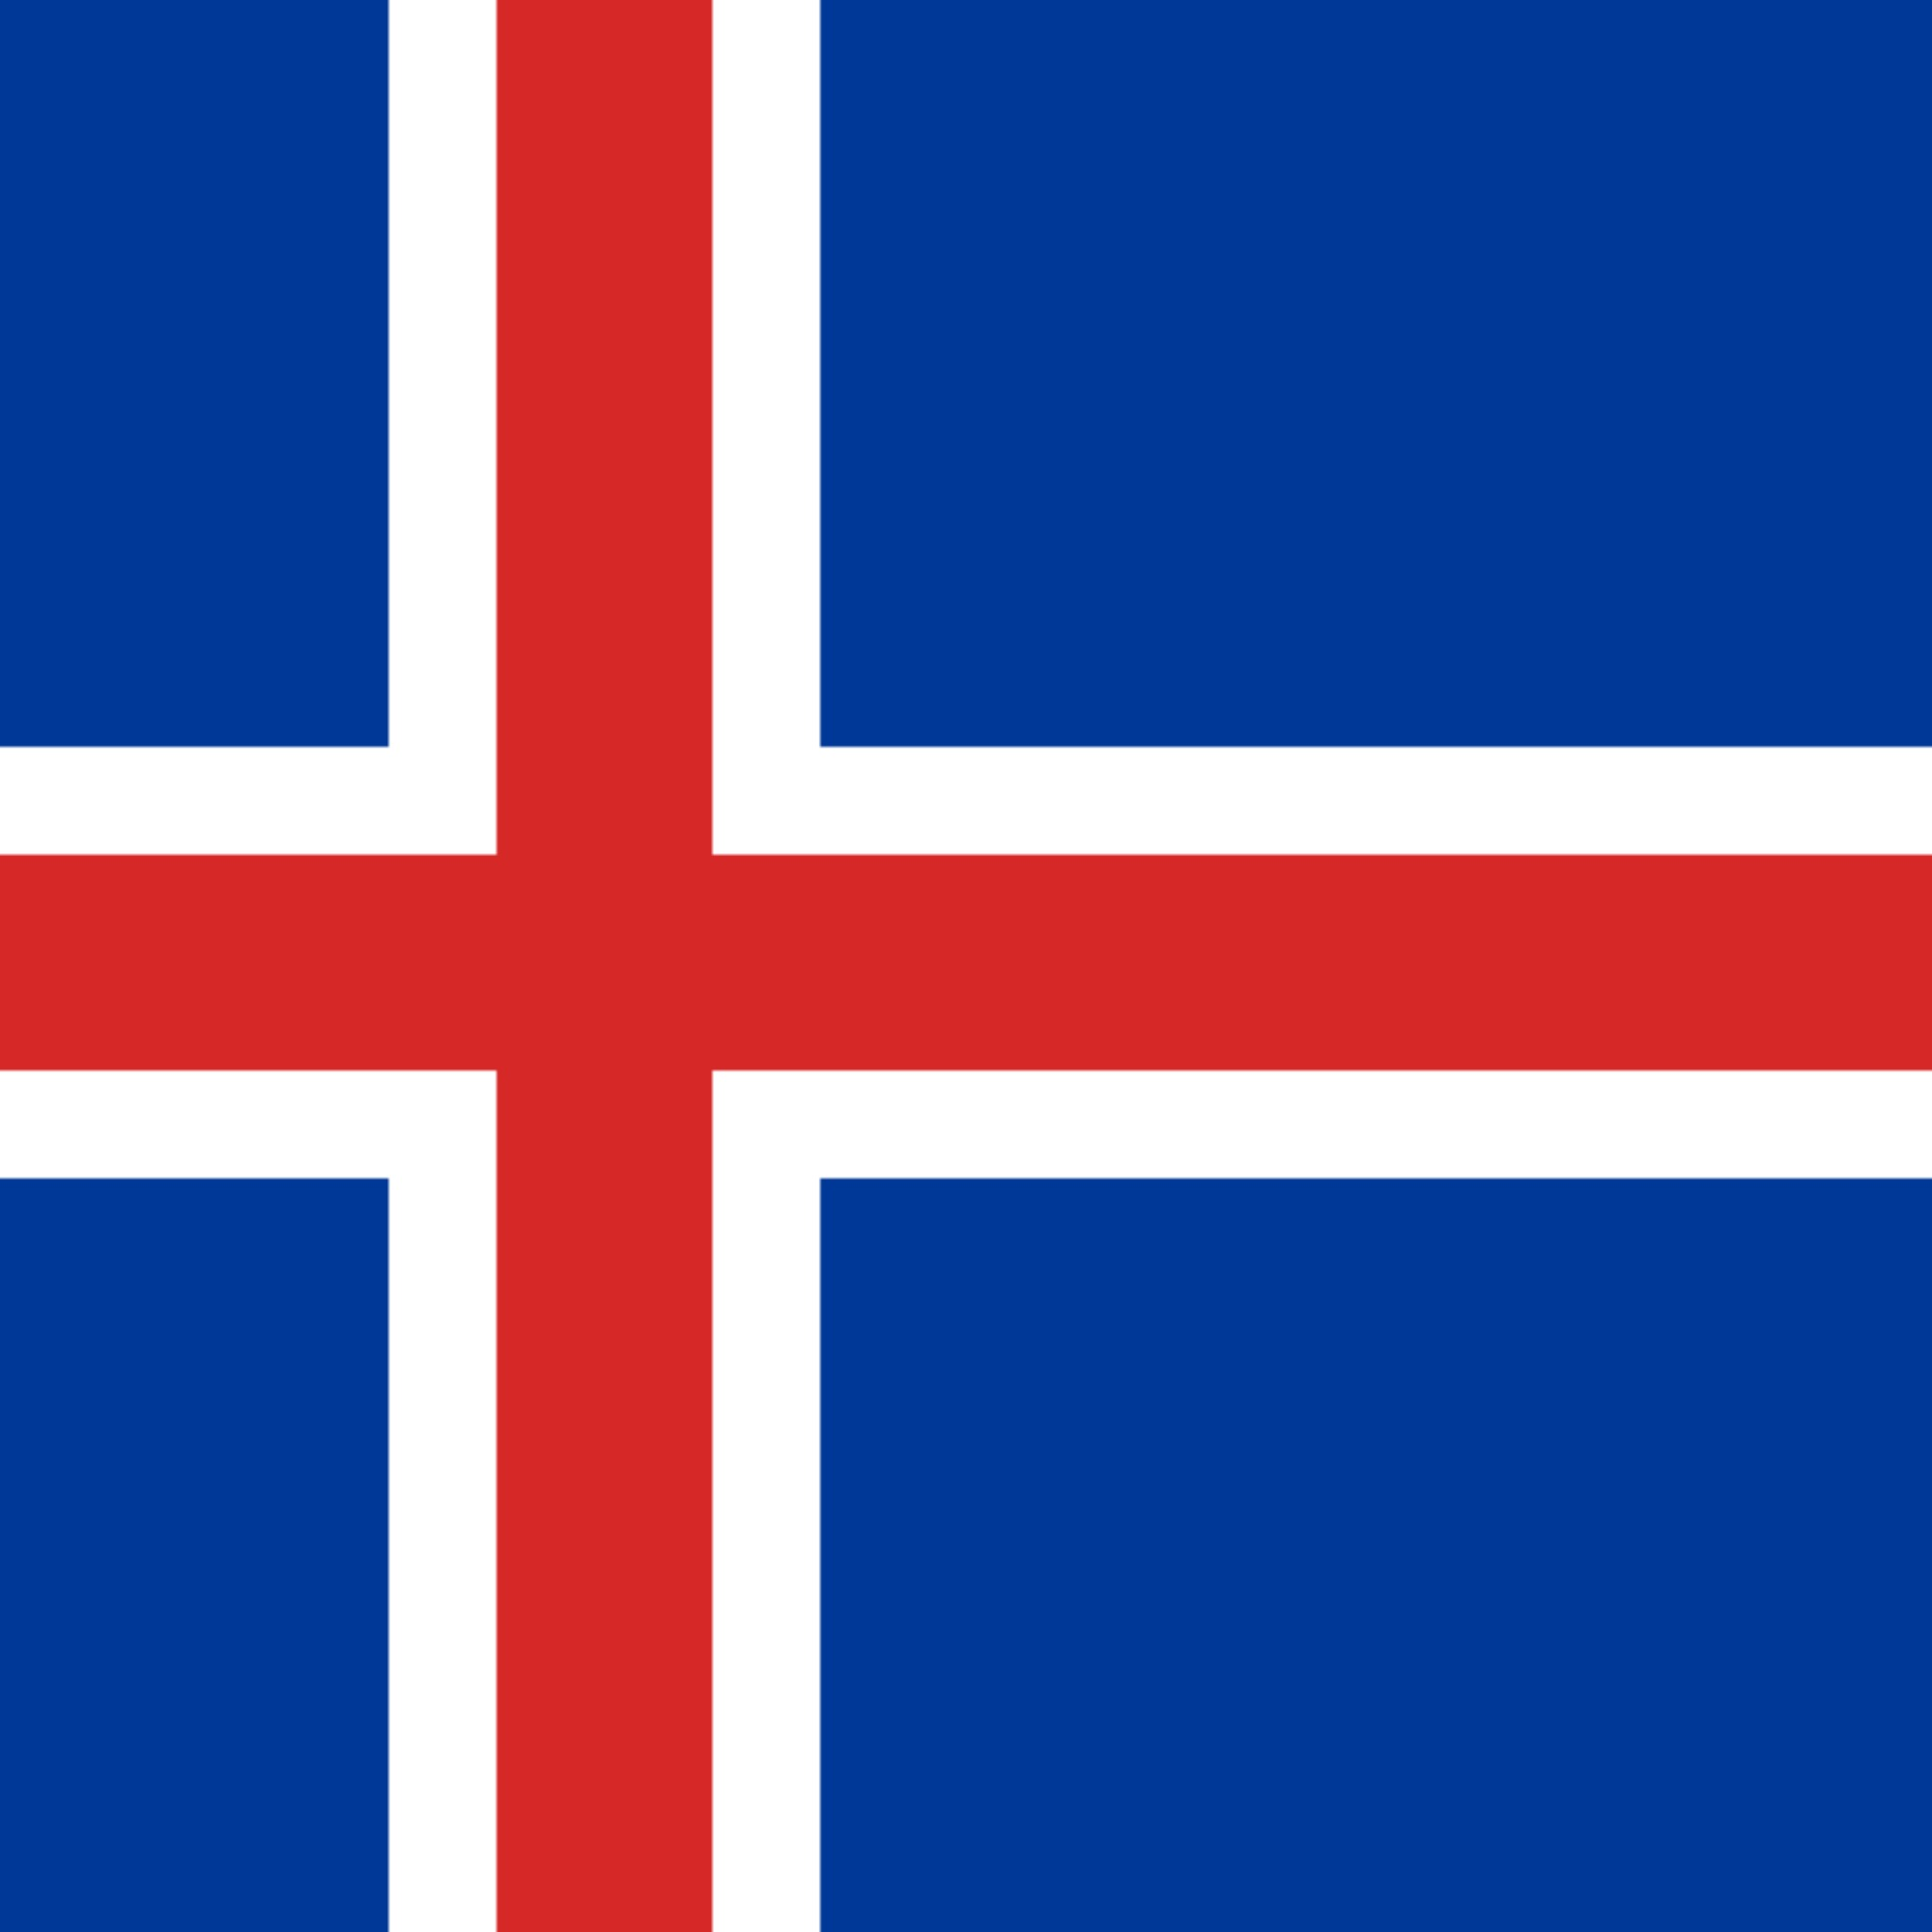 Honorary Consulate of Iceland (Valencia)